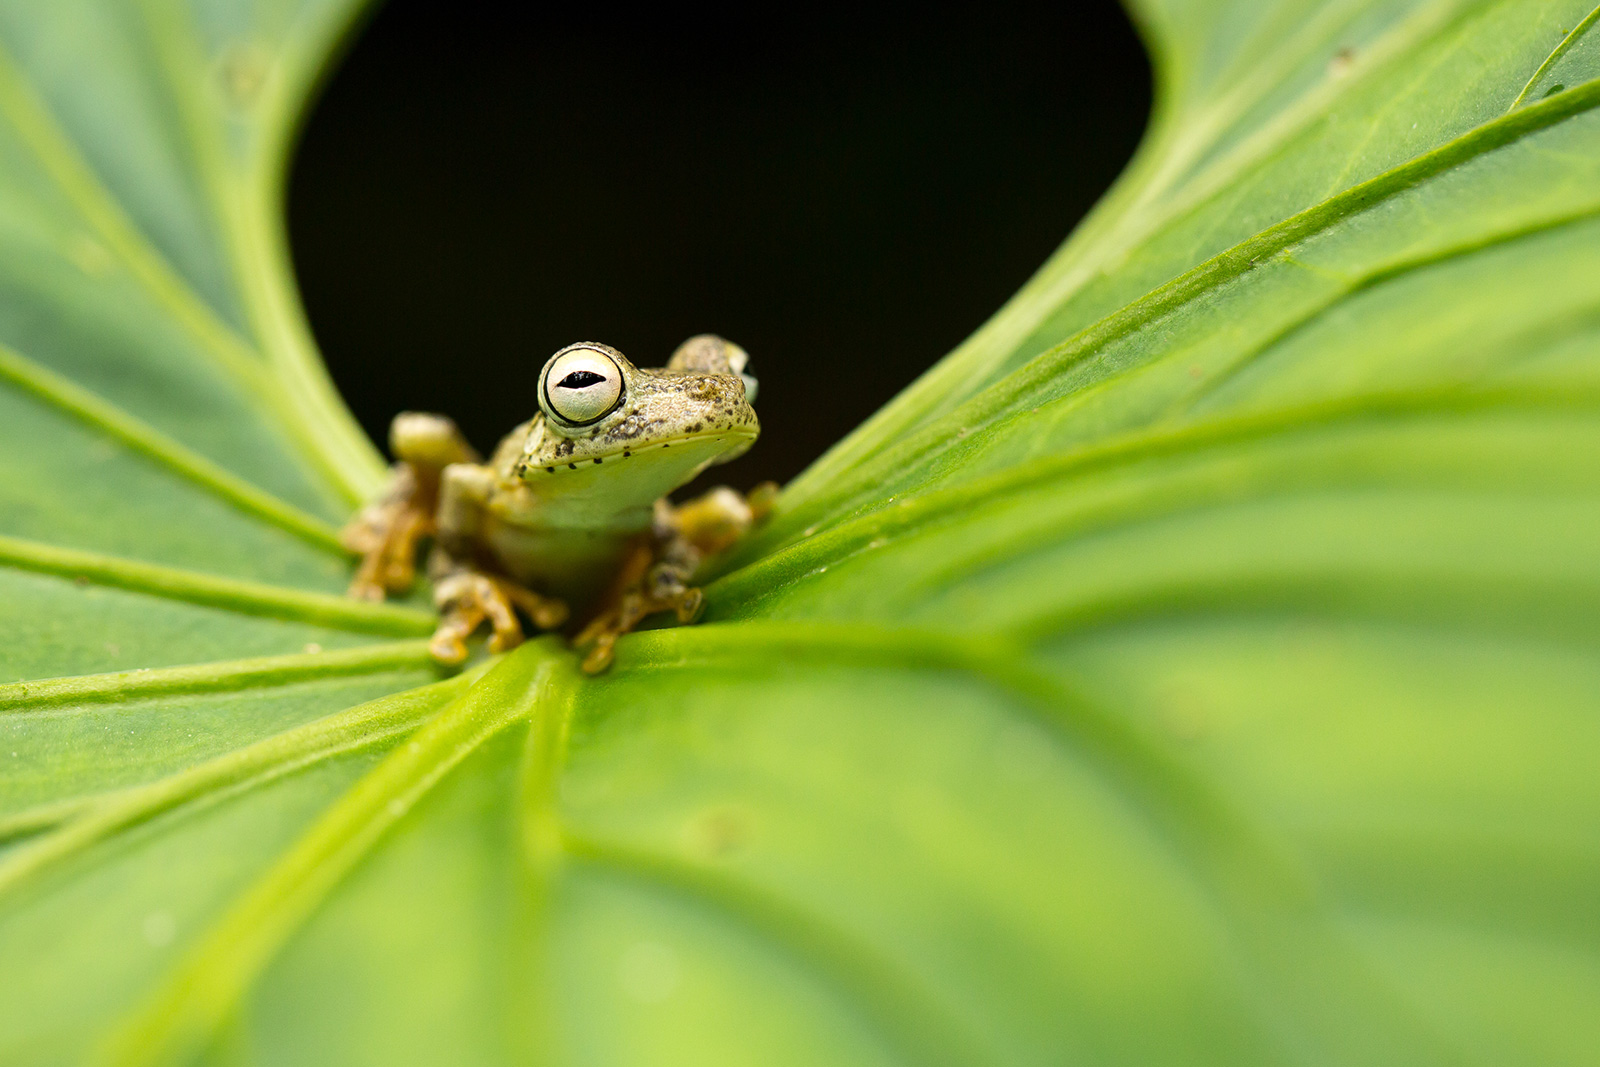 A small frog rests inside a large leaf